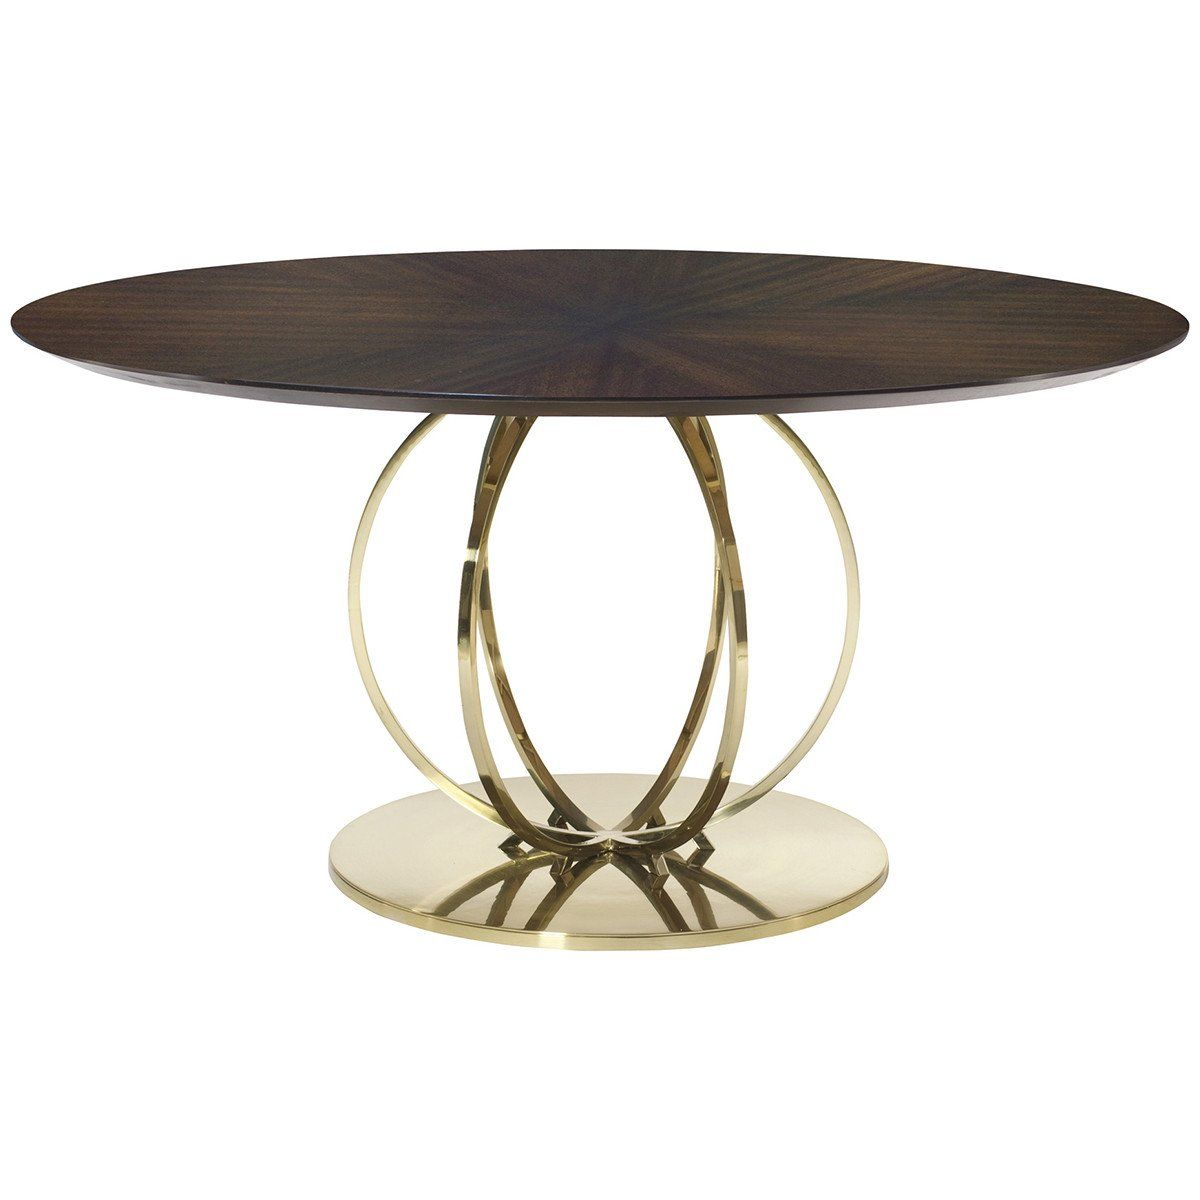 Bernhardt Jet Set Round Dining Table Features Fancy Face Top